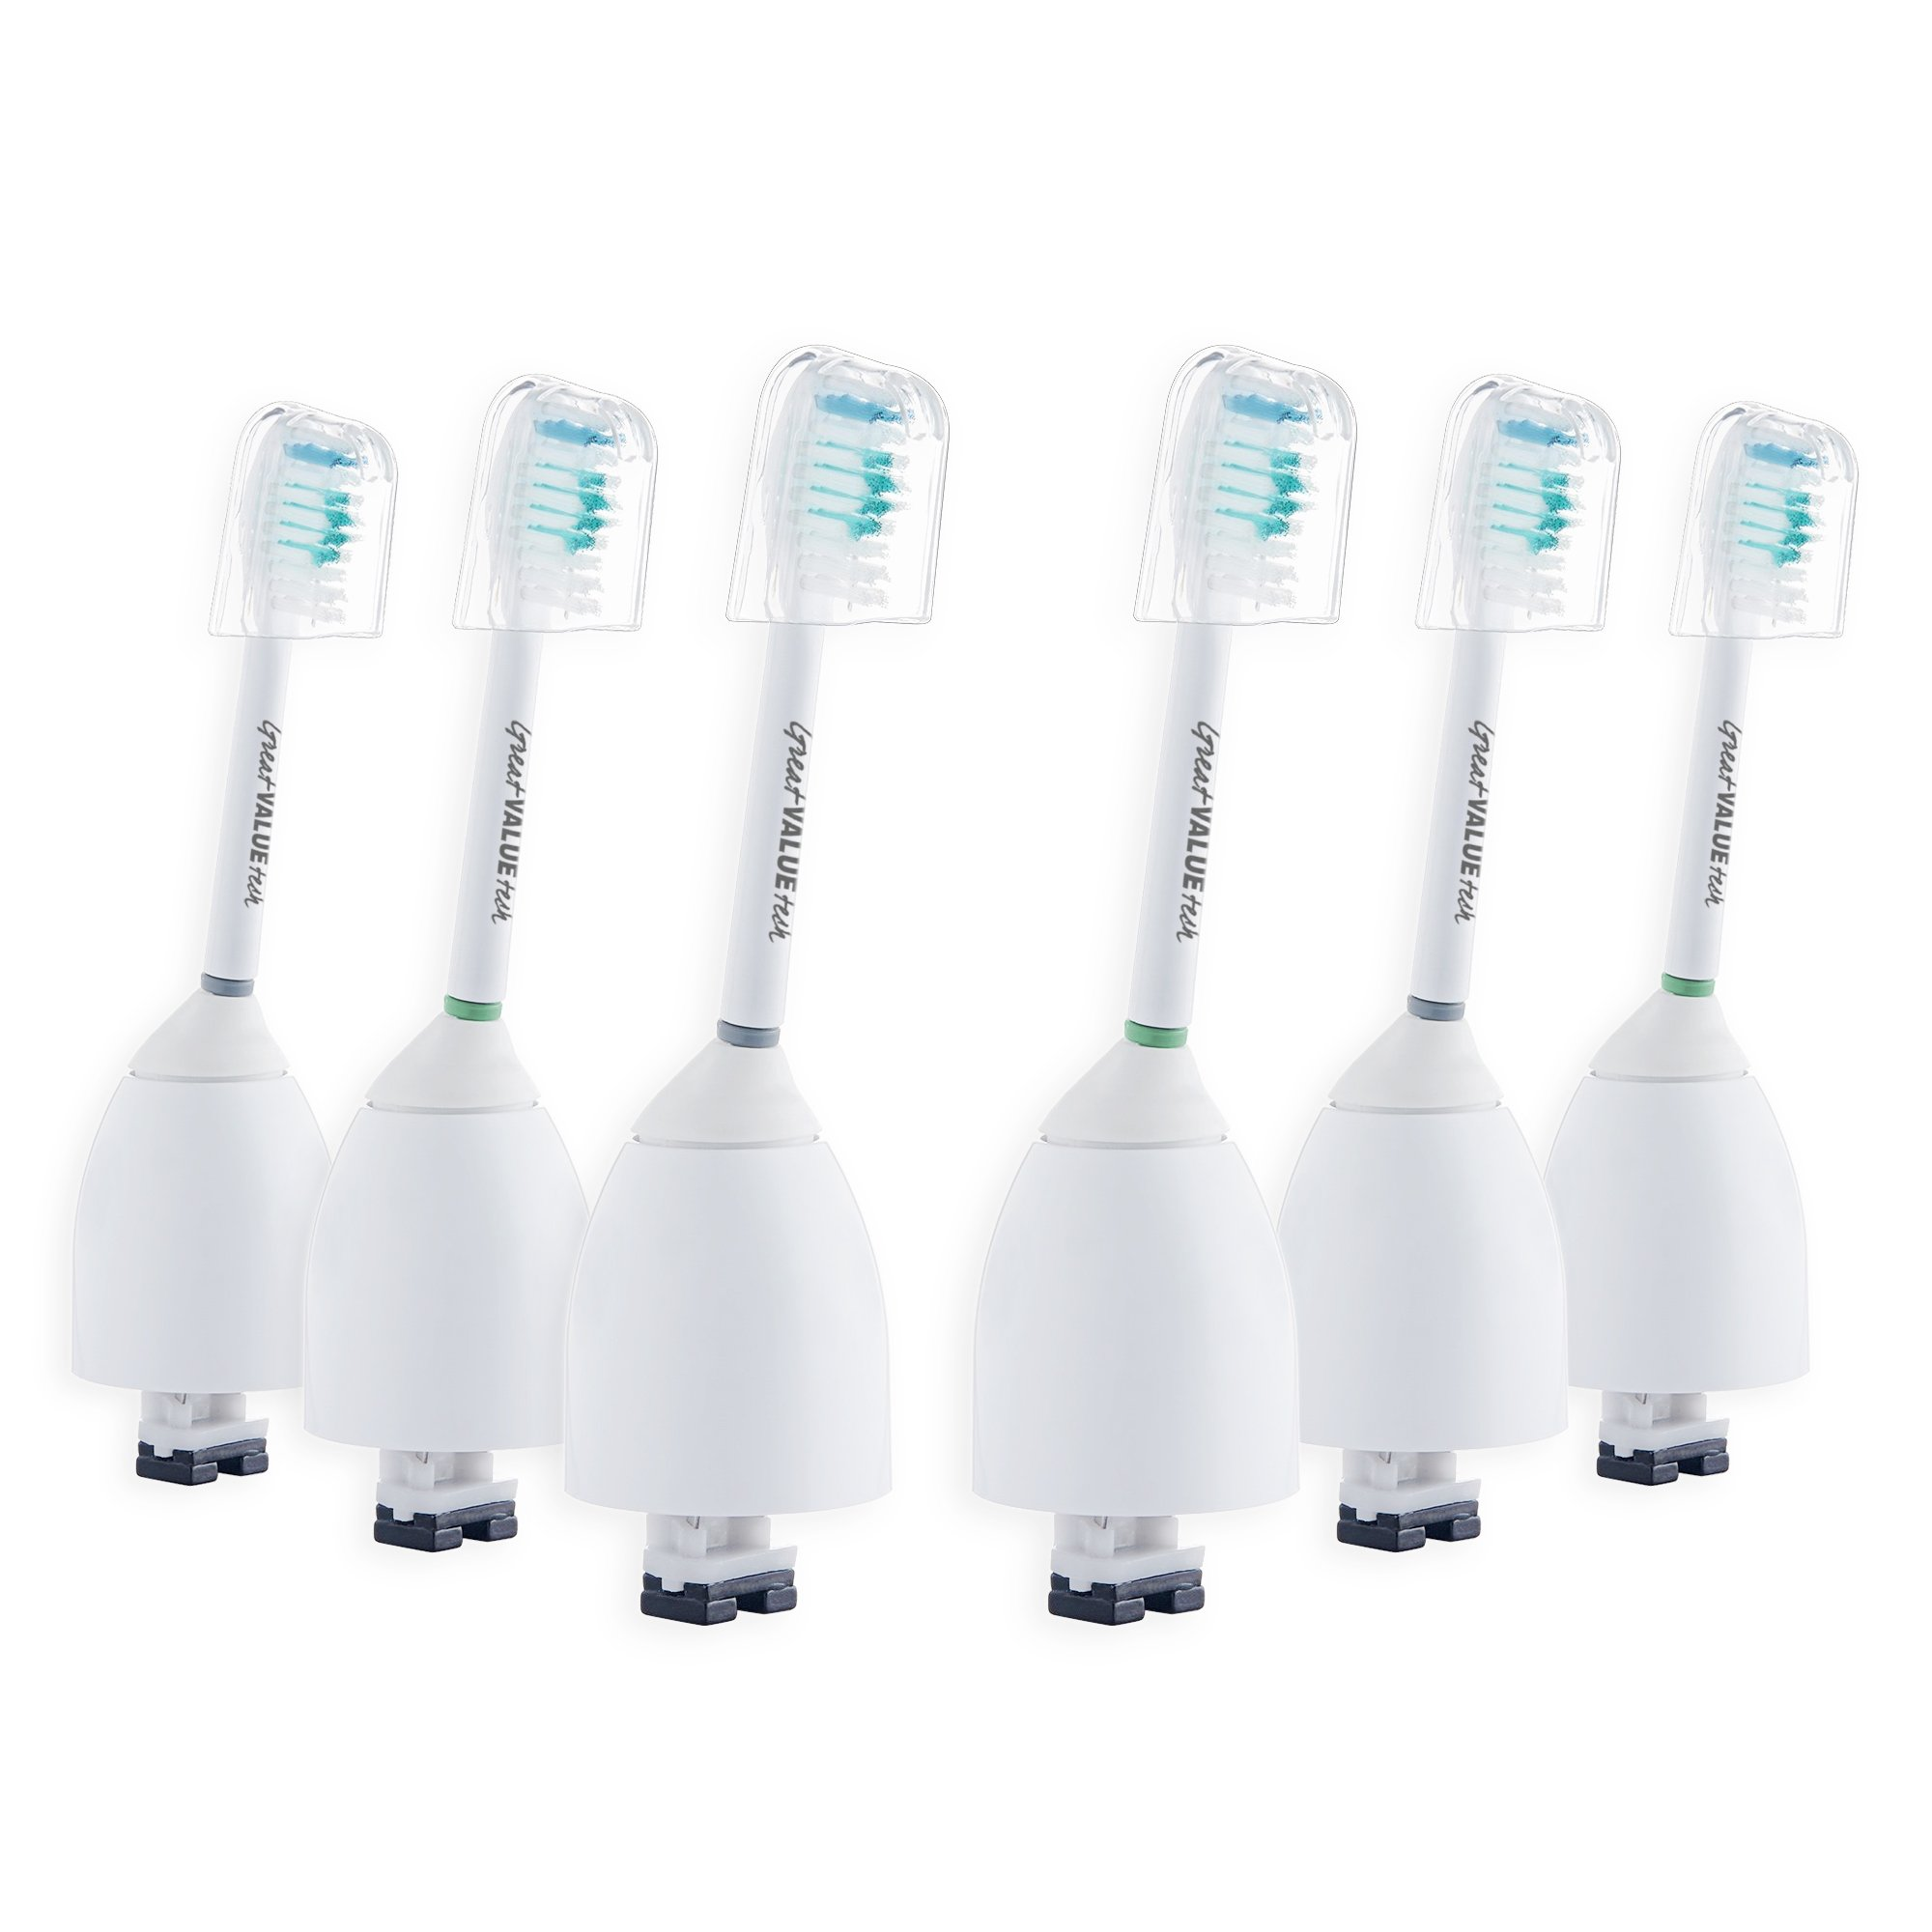 SoniPro 6x Replacement Toothbrush Heads for Philips Sonicare E-Series Standard fits Elite, Essence, Advance, CleanCare, Xtreme, HX7022 HX7023 HX7026